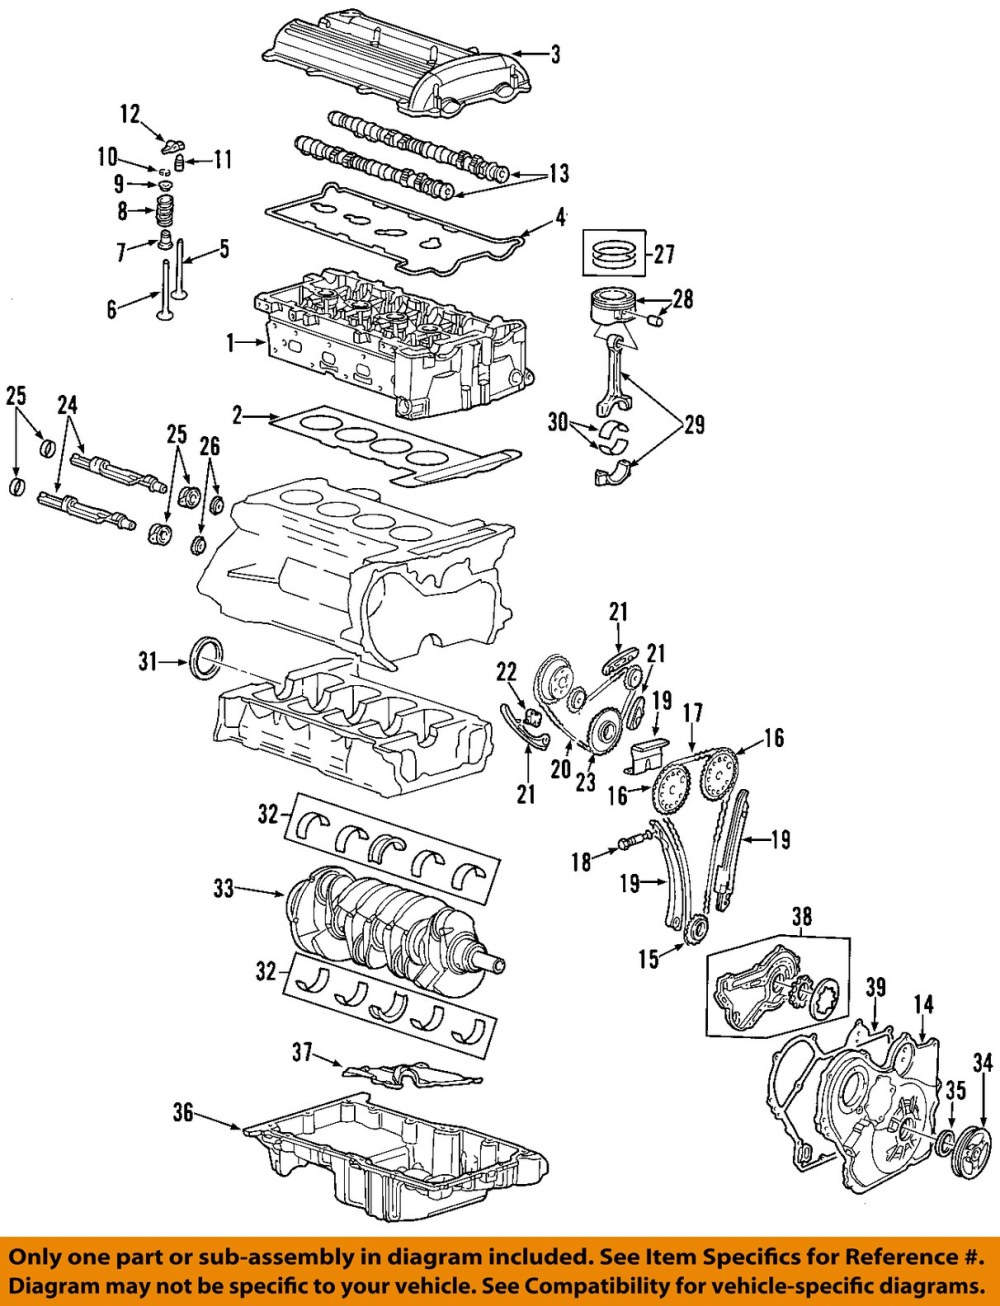 medium resolution of 2007 2 2l engine diagram wire management u0026 wiring diagram2007 2 2l engine diagram wiring